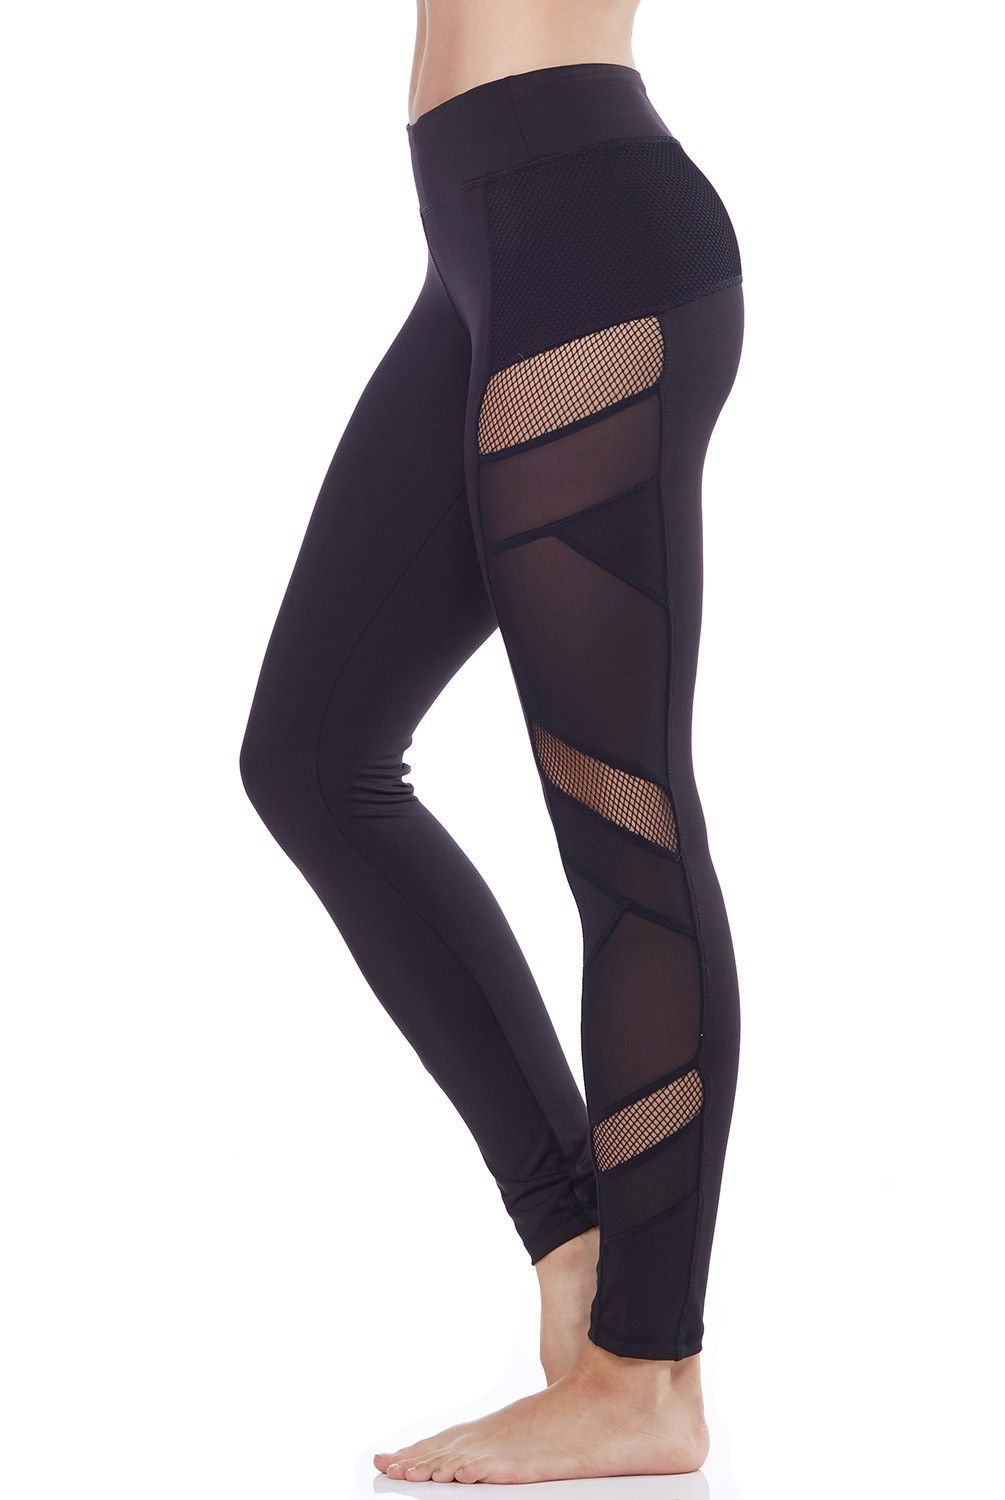 mesh yoga pants workout with mesh panels the else 10780